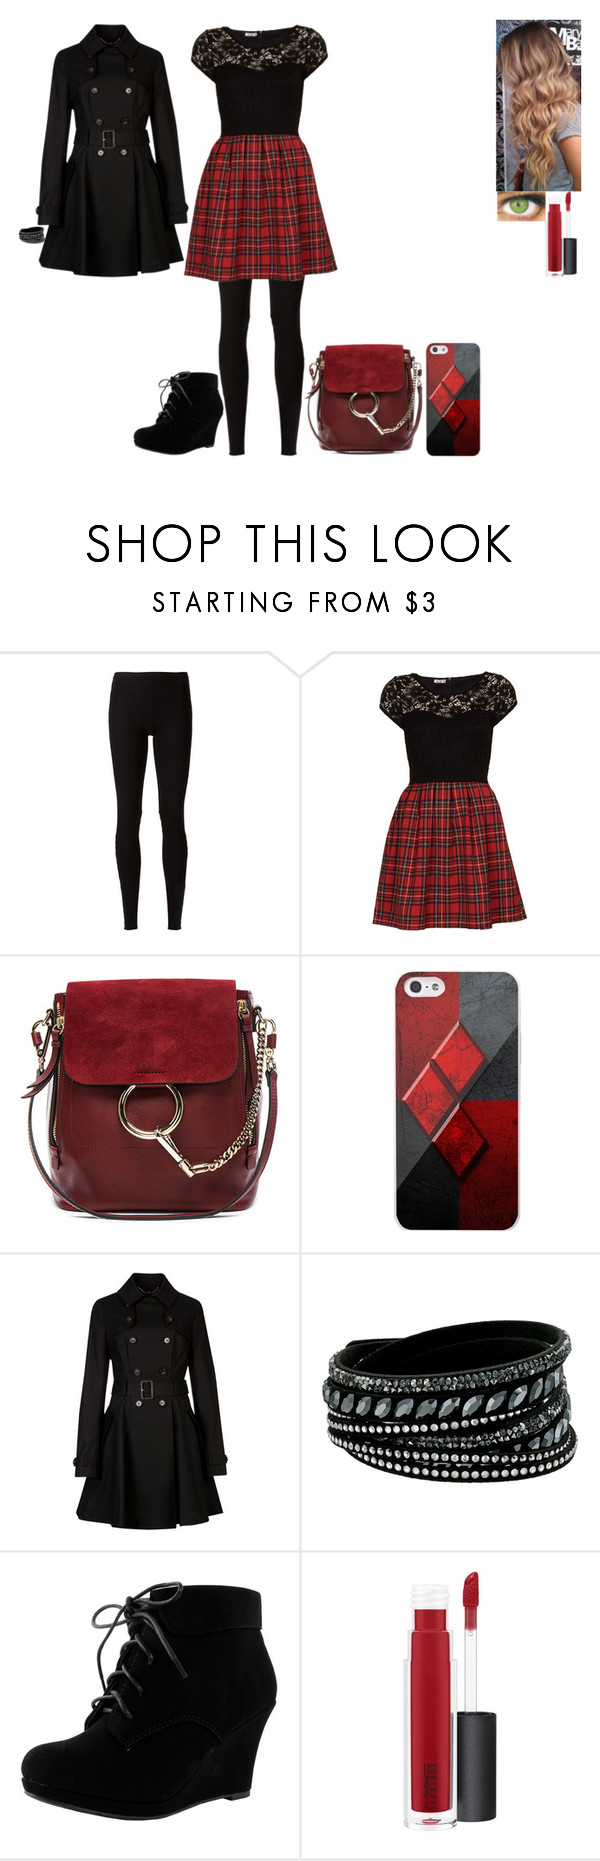 """And my heart won't beat again If I can't feel him in my veins (Day 1)"" by ilovecats-886 ❤ liked on Polyvore featuring Rick Owens Lilies, WalG, Chloé, Samsung, Ted Baker, Swarovski and MAC Cosmetics"